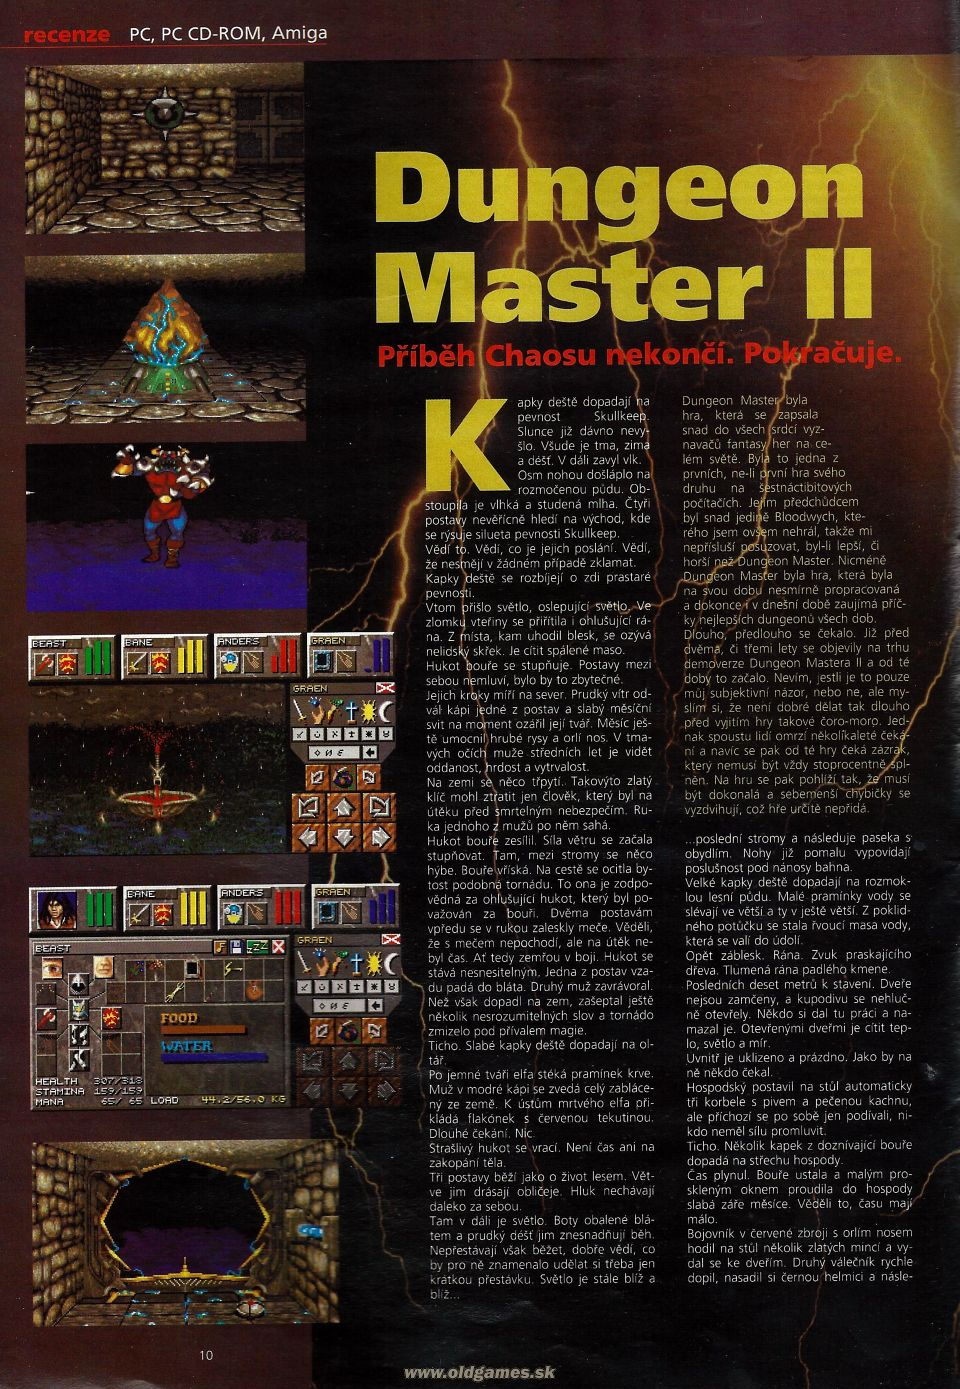 Dungeon Master II for PC Review published in Czech magazine 'Level', Issue #8 September 1995, Page 10